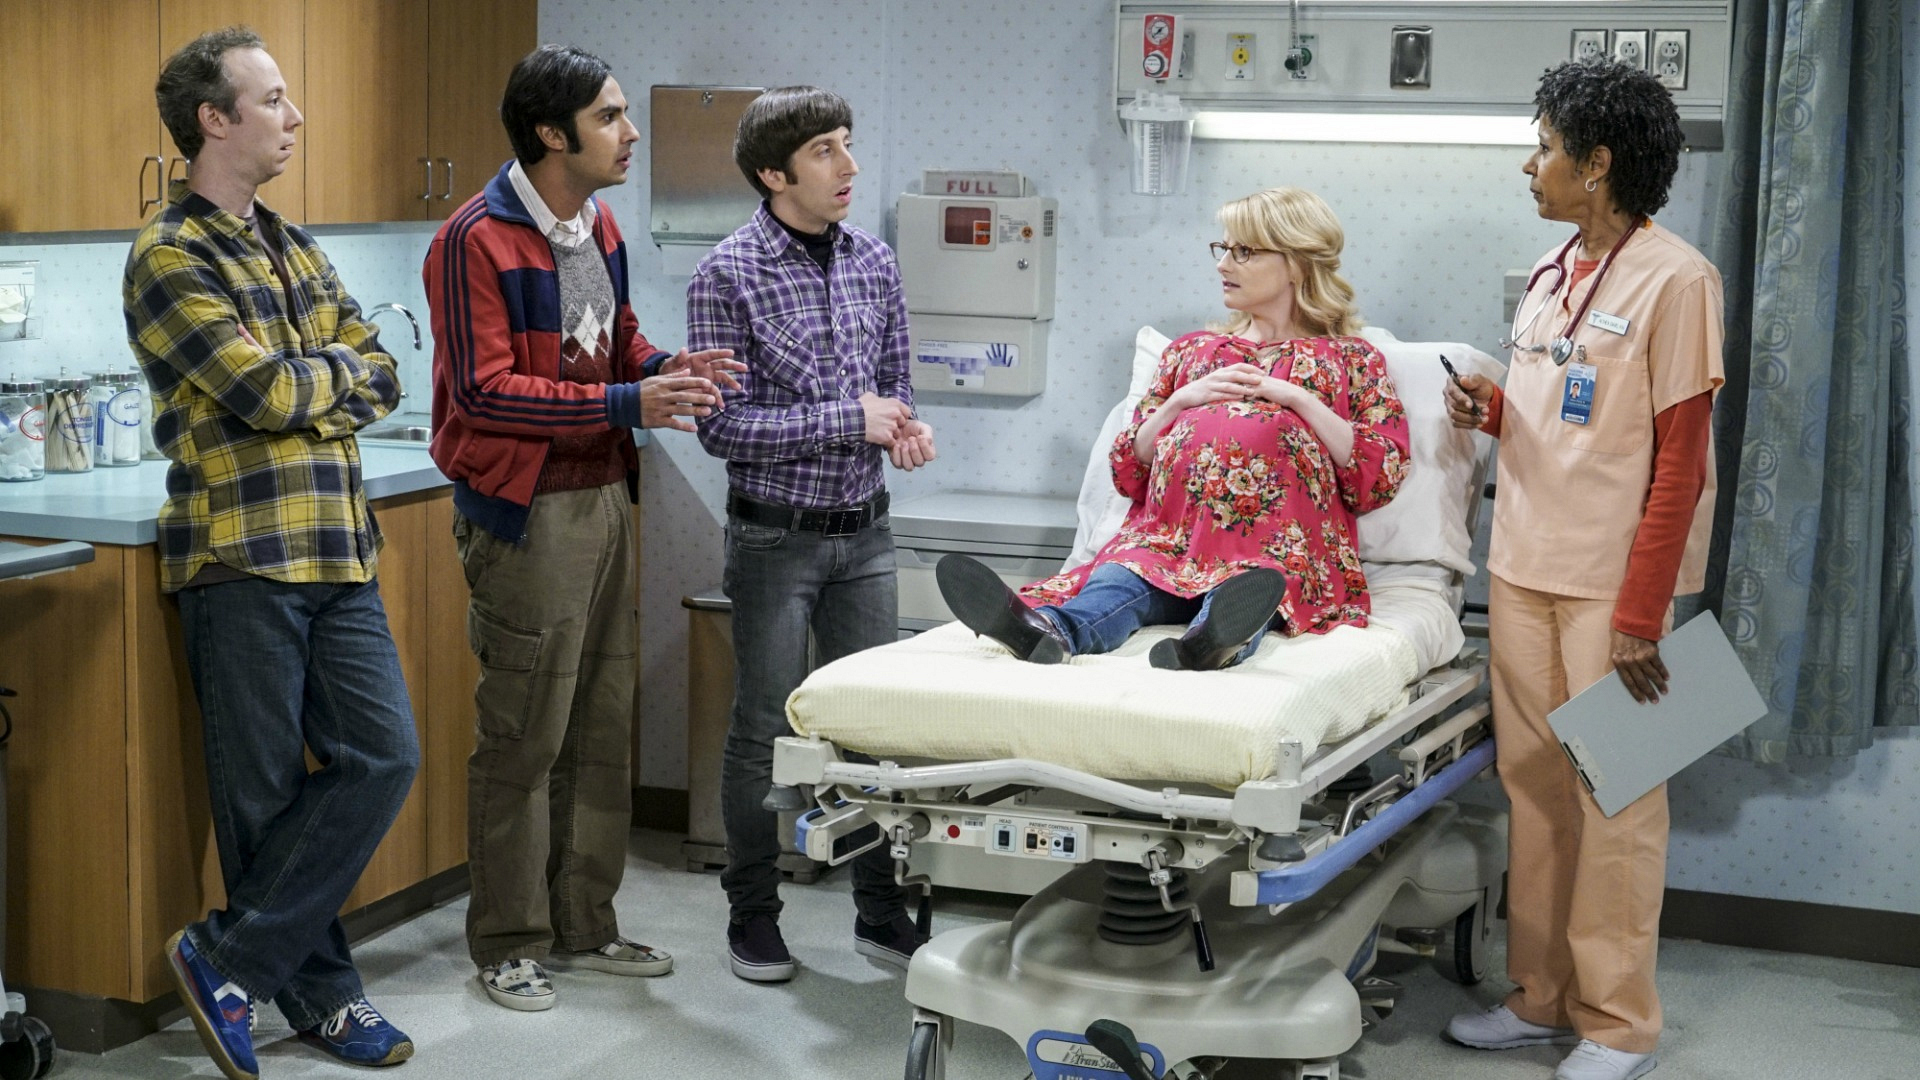 The guys take turns sharing information about Bernie's pregnancy with the nurse.